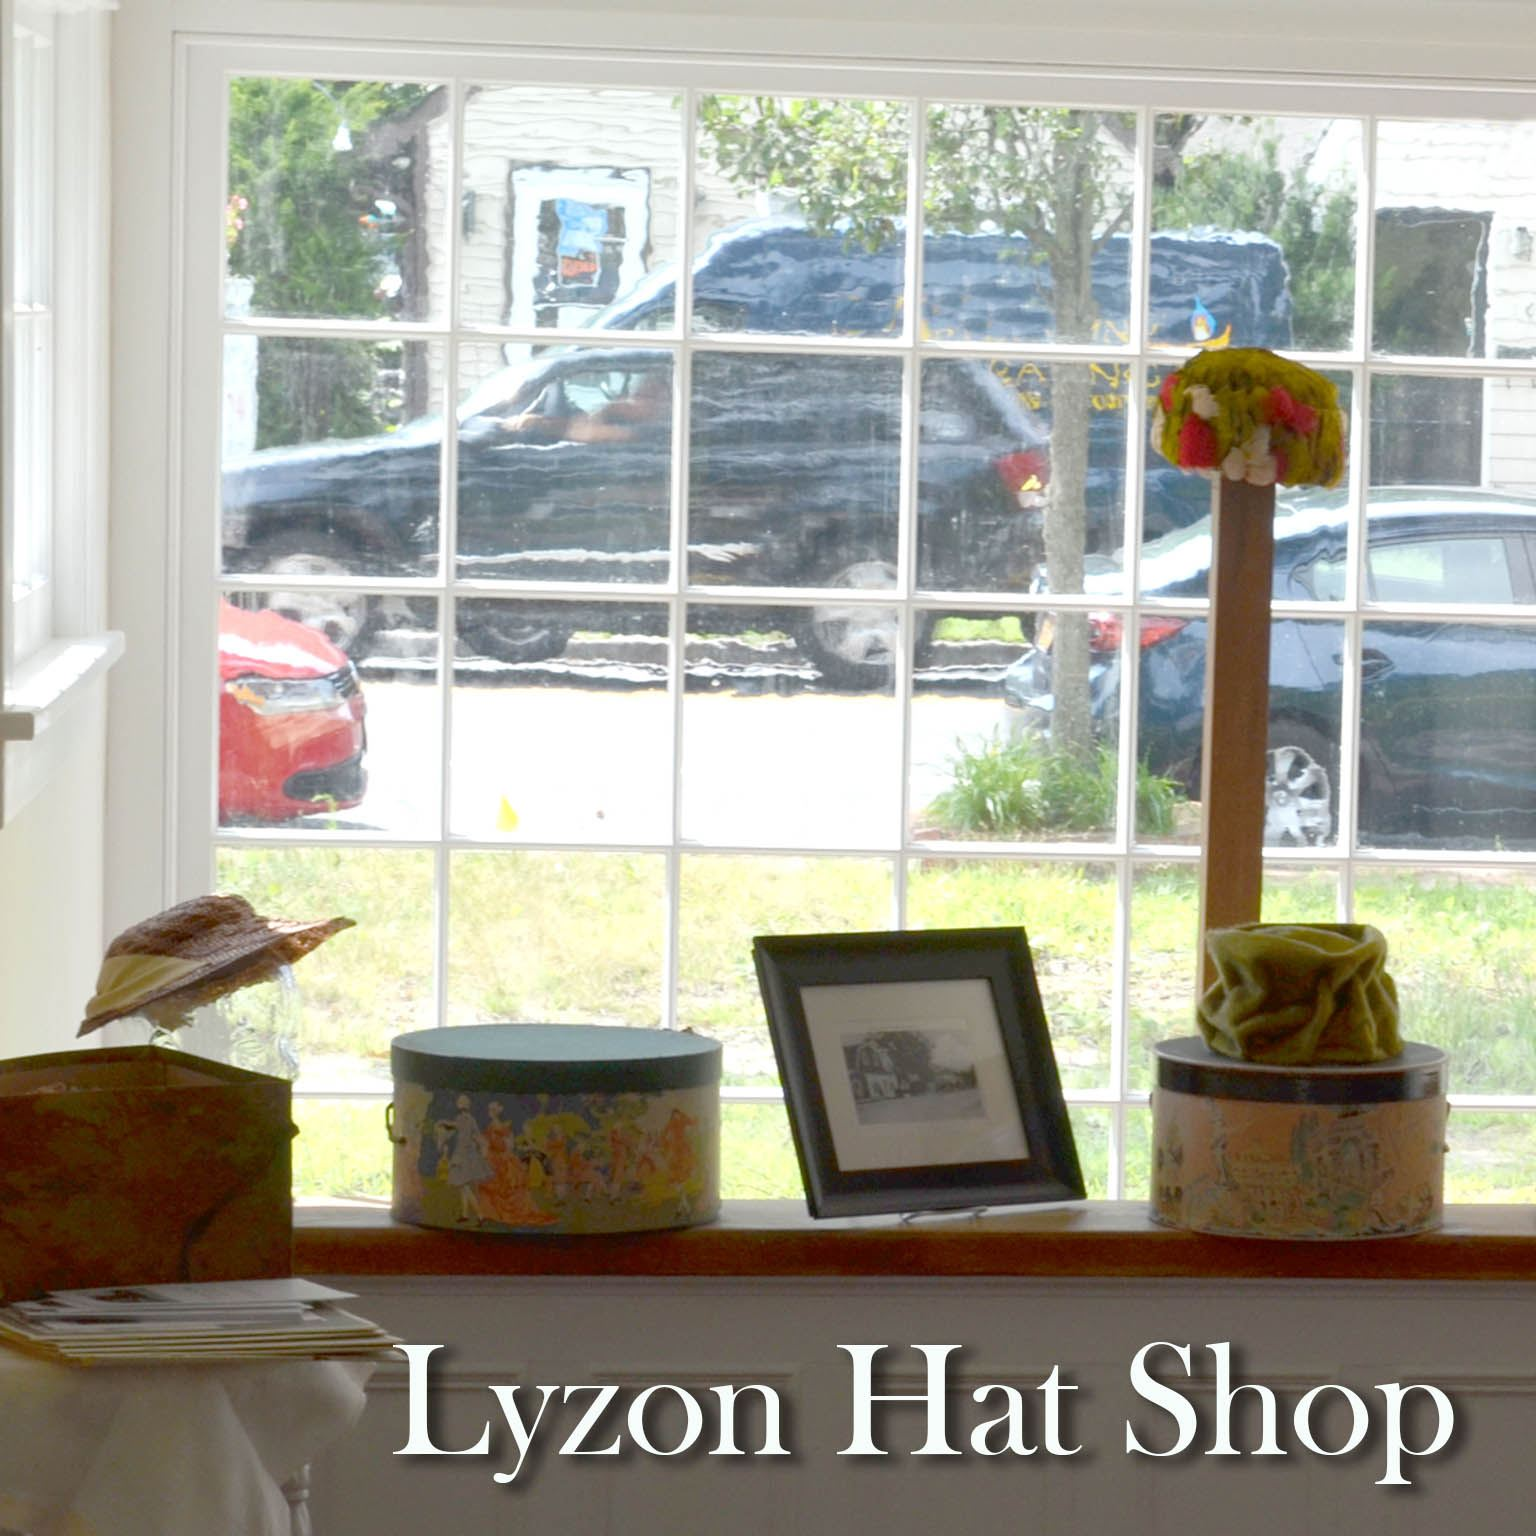 Lyzon Hat Shop